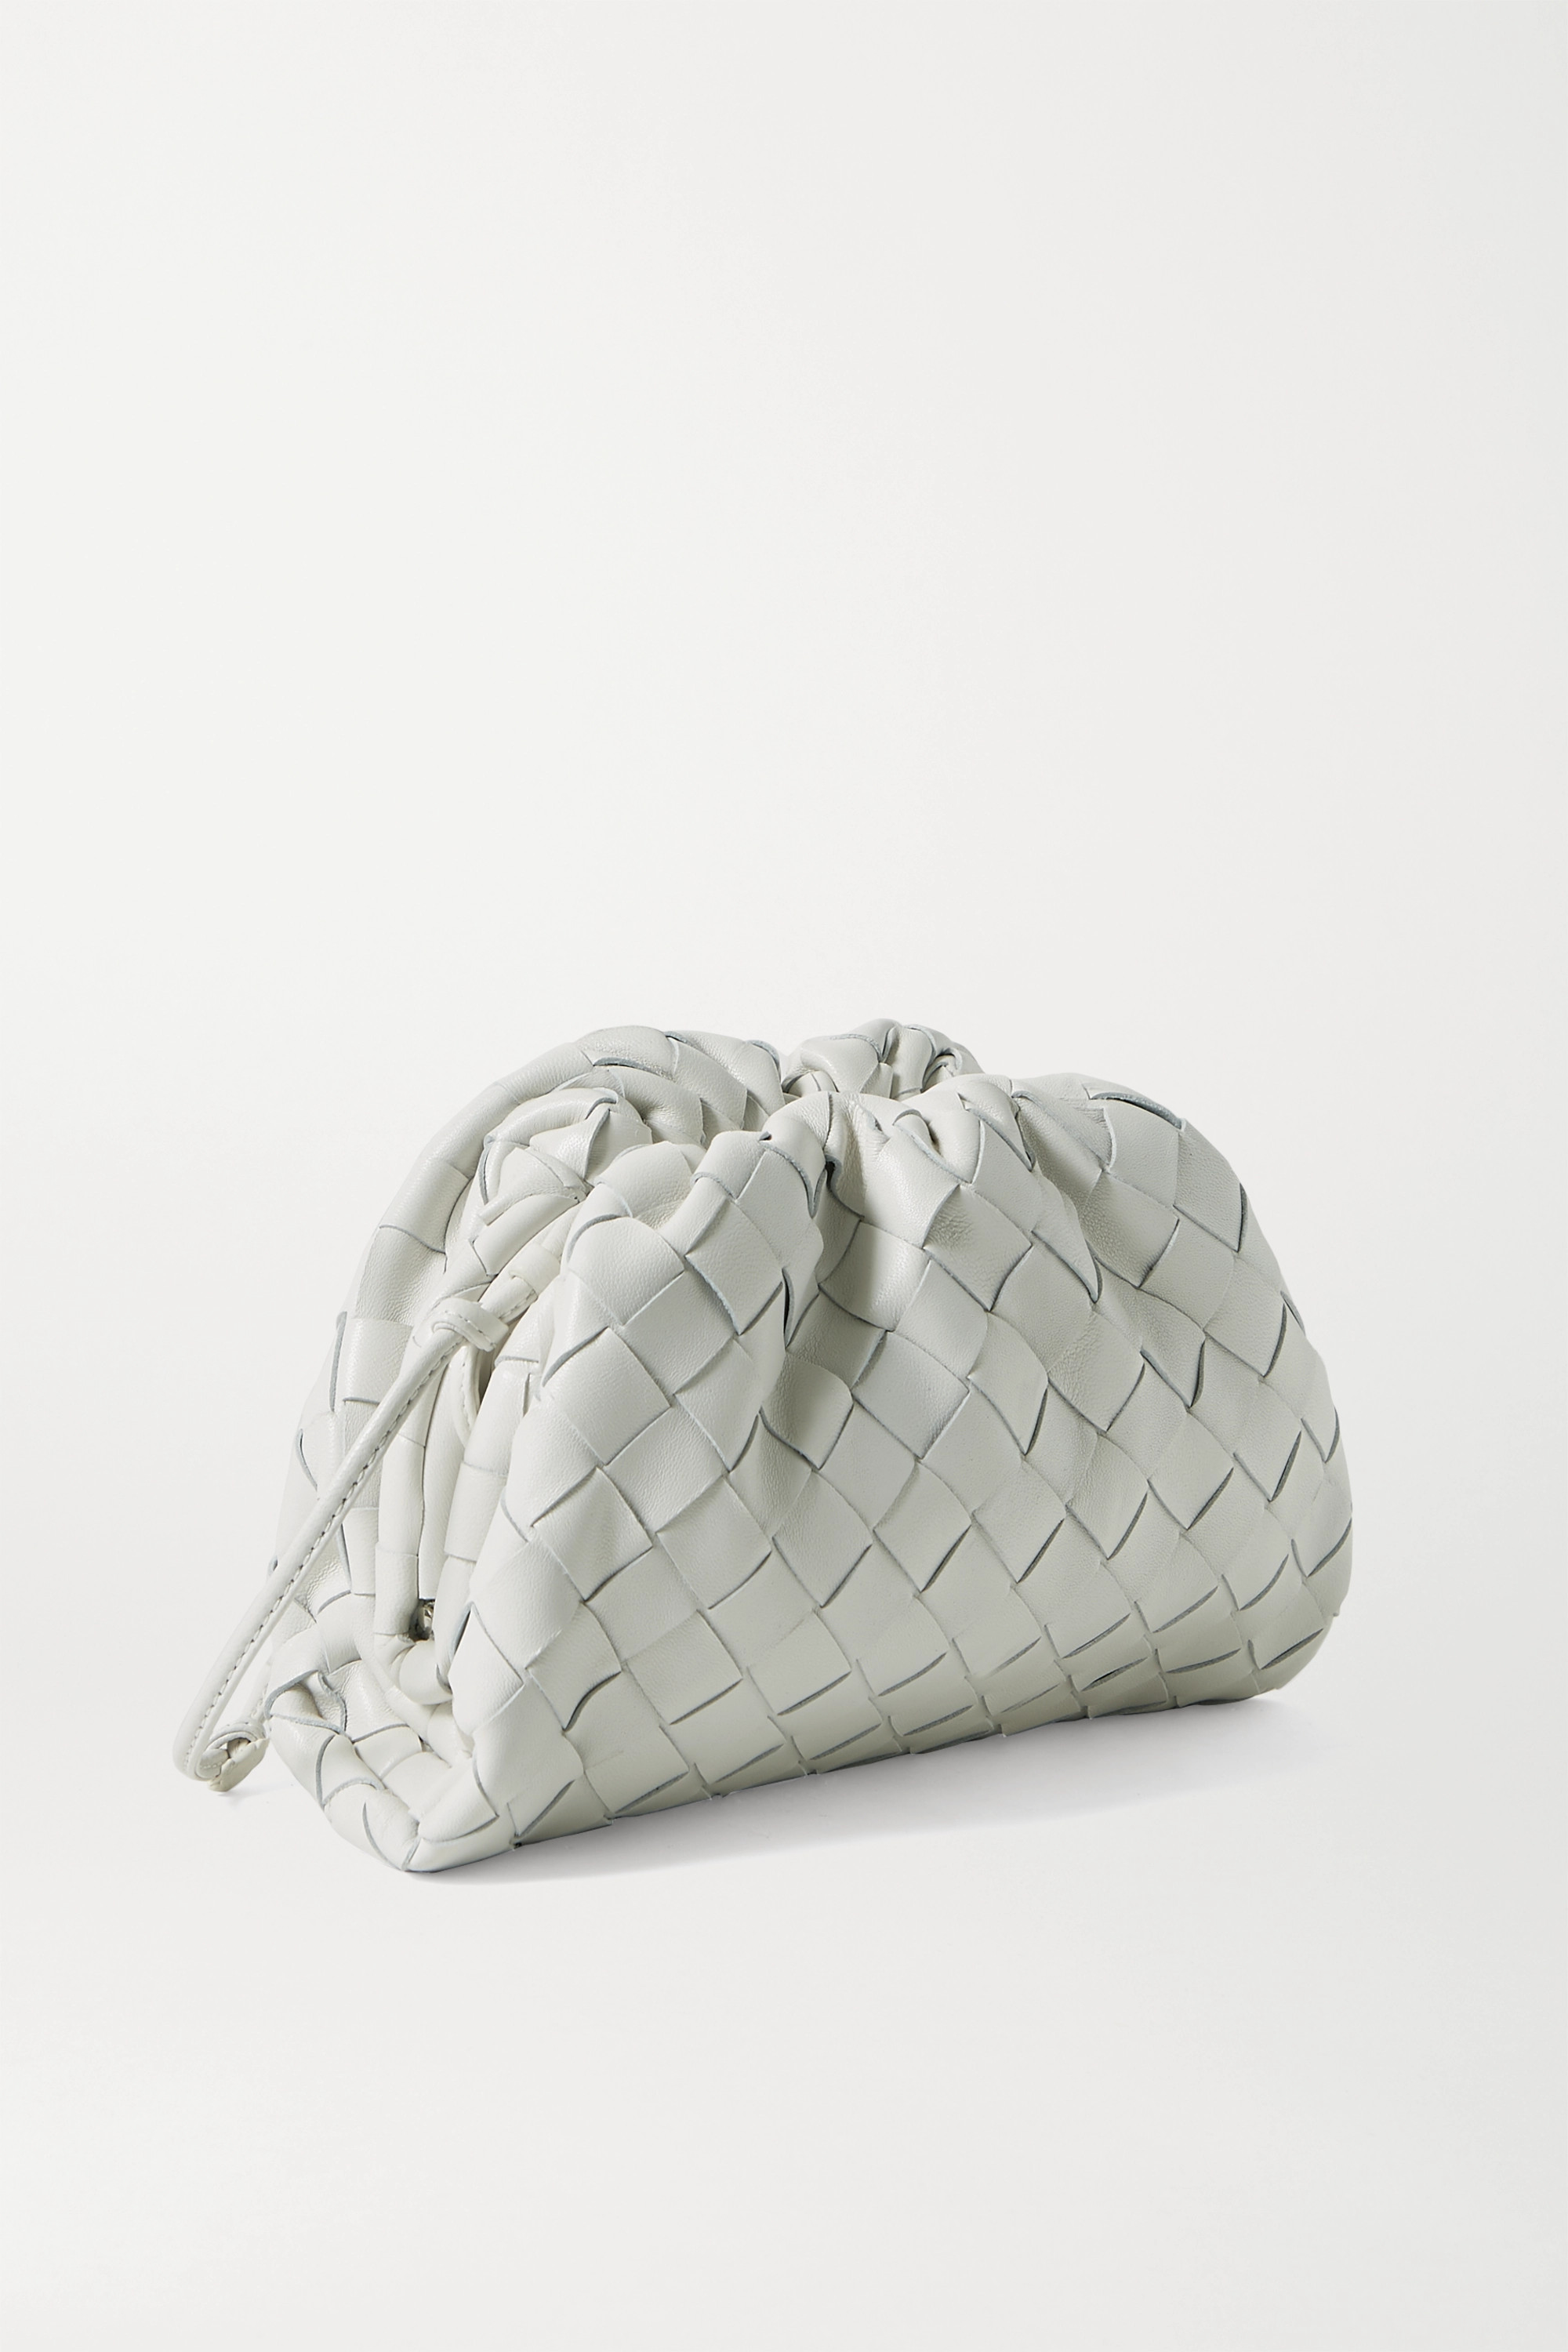 Bottega Veneta The Pouch 缩褶 Intrecciato 皮革小号手拿包